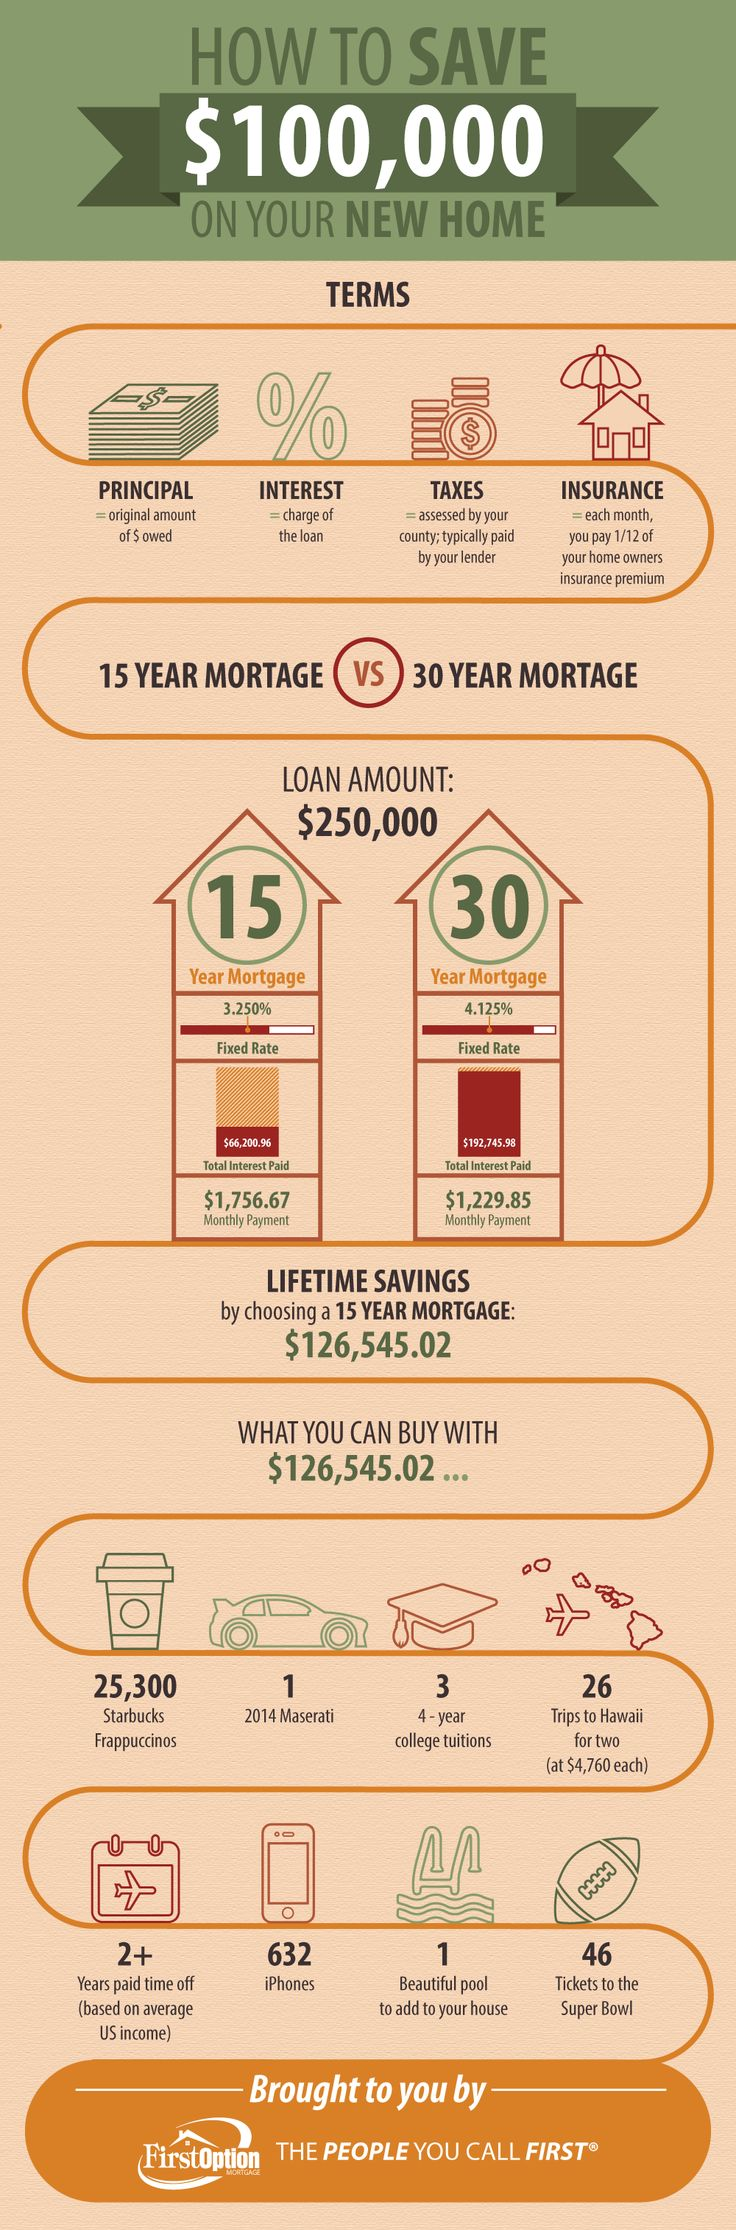 How To Save $100,000 On Your New Home [infographic]  #realestate #mortgage